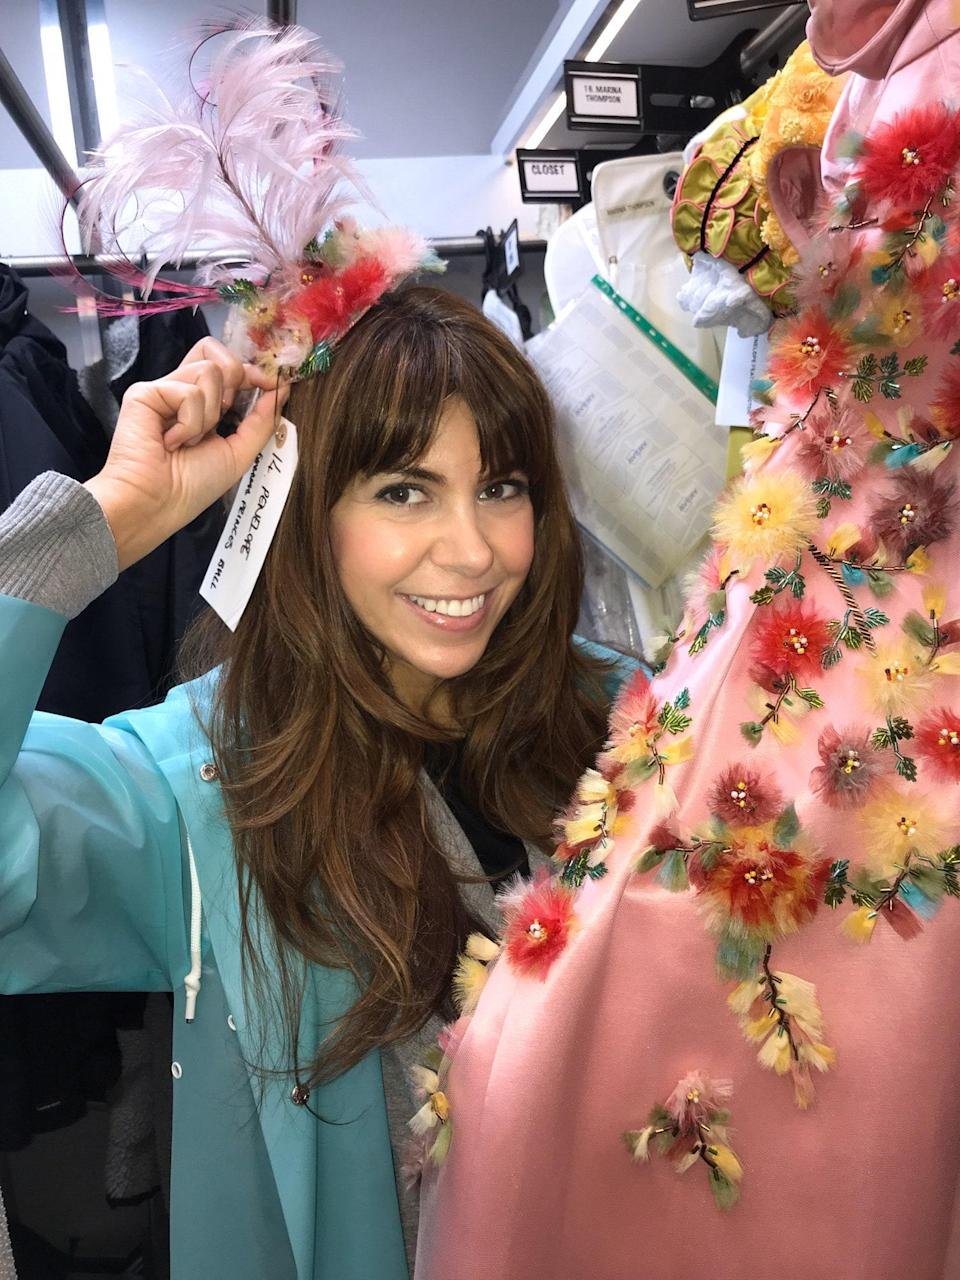 Here I am trying on one of the Featherington's headdresses.